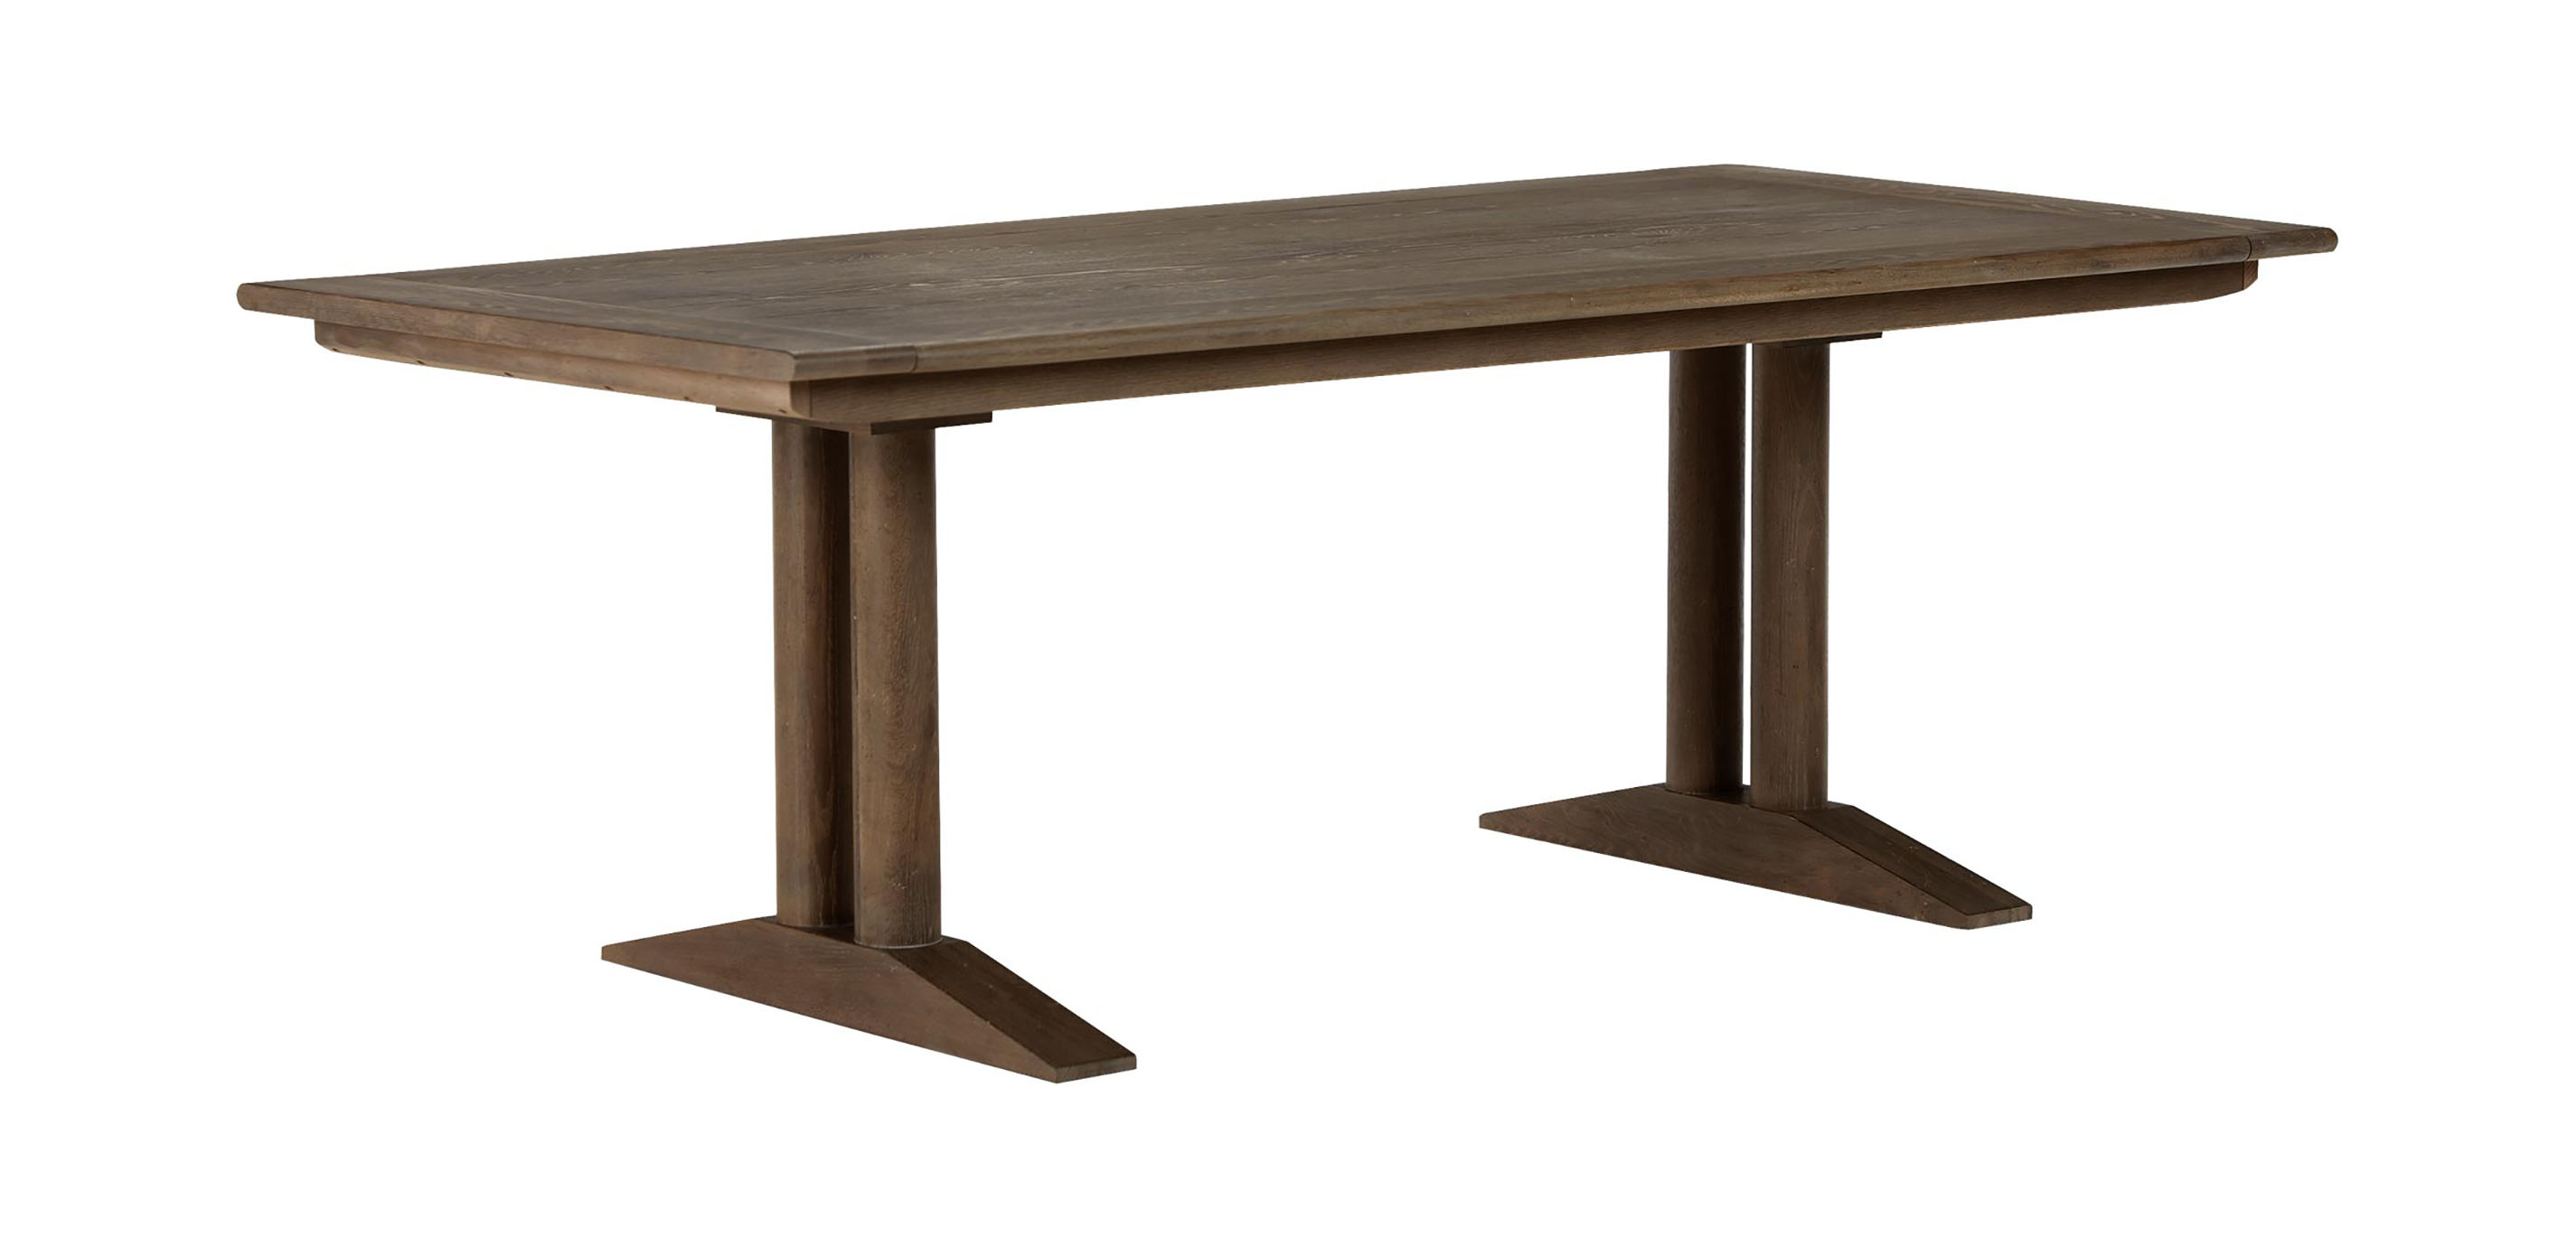 Sayer dining table dining tables for Dining room table 40 x 120